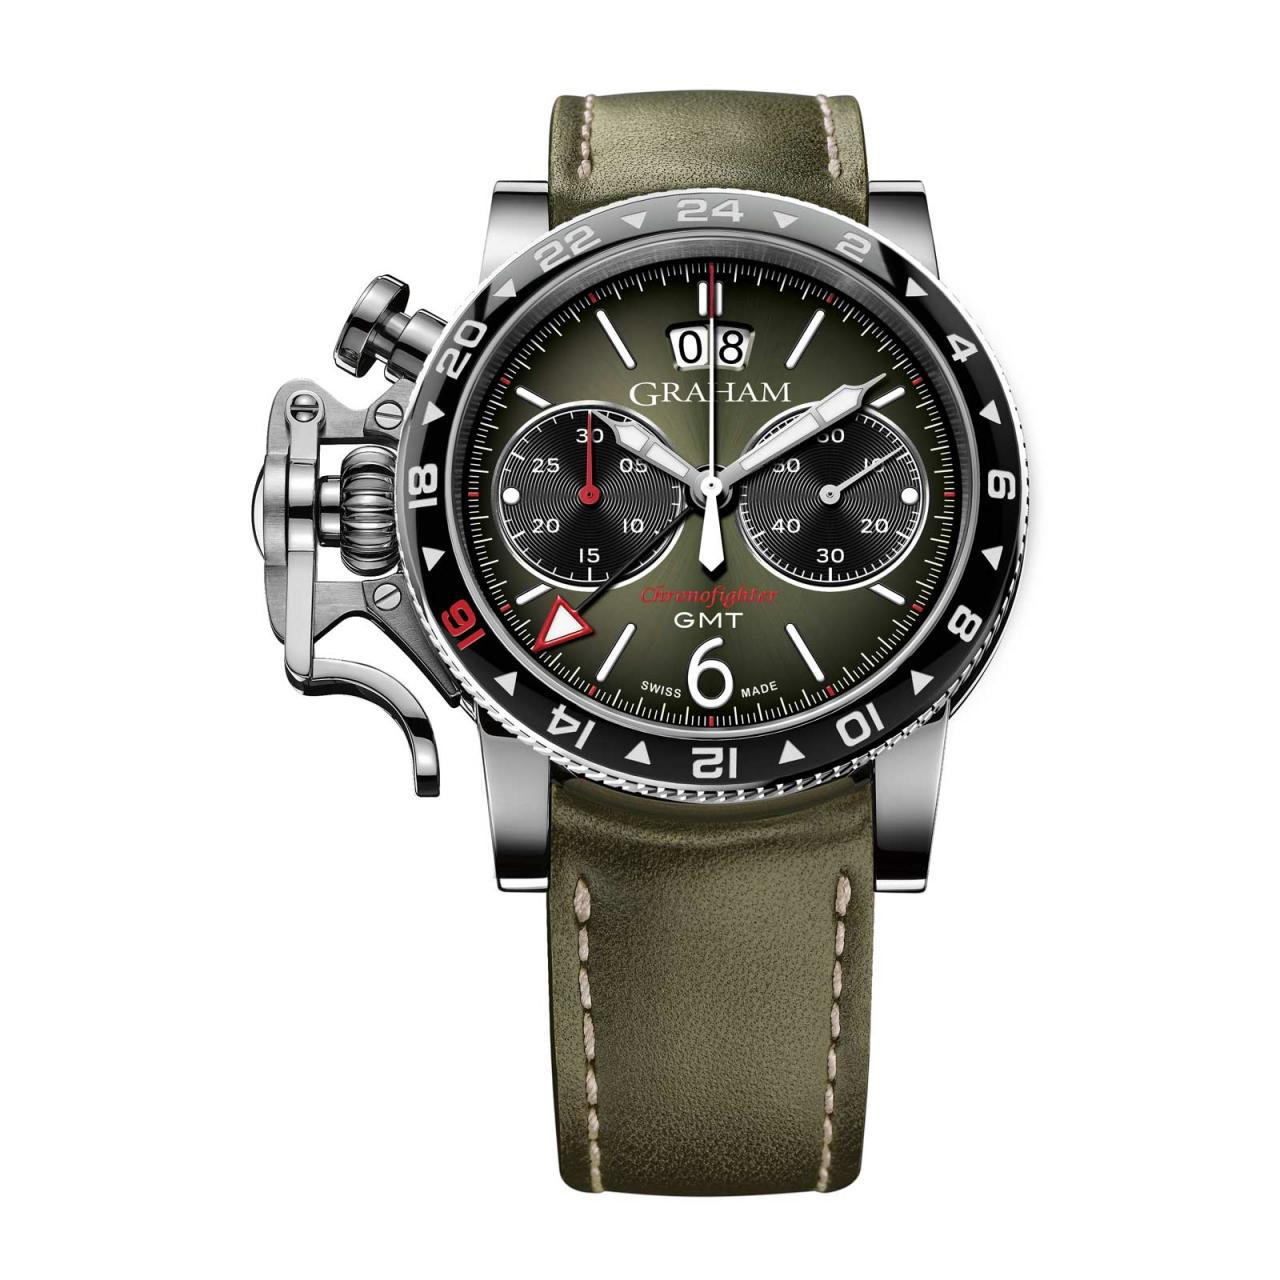 Unique piece Graham watches toronto Replica Chronofighter Vintage GMT